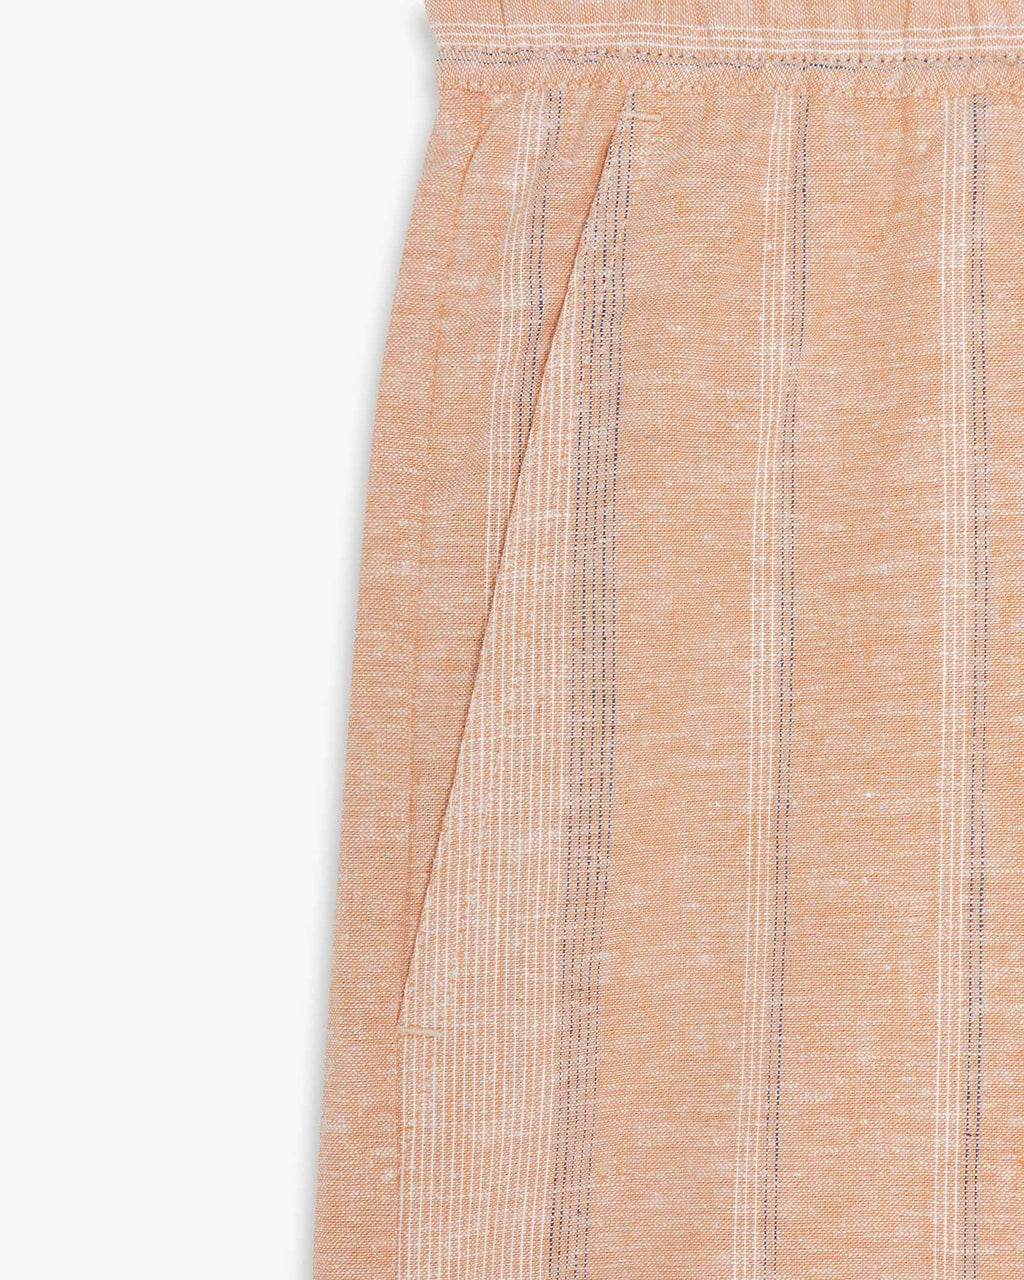 variant_1 | EN Shorts Beige with Stripes Women LANIUS | DE Shorts kurze Hose Beige mit Streifen Damen LANIUS